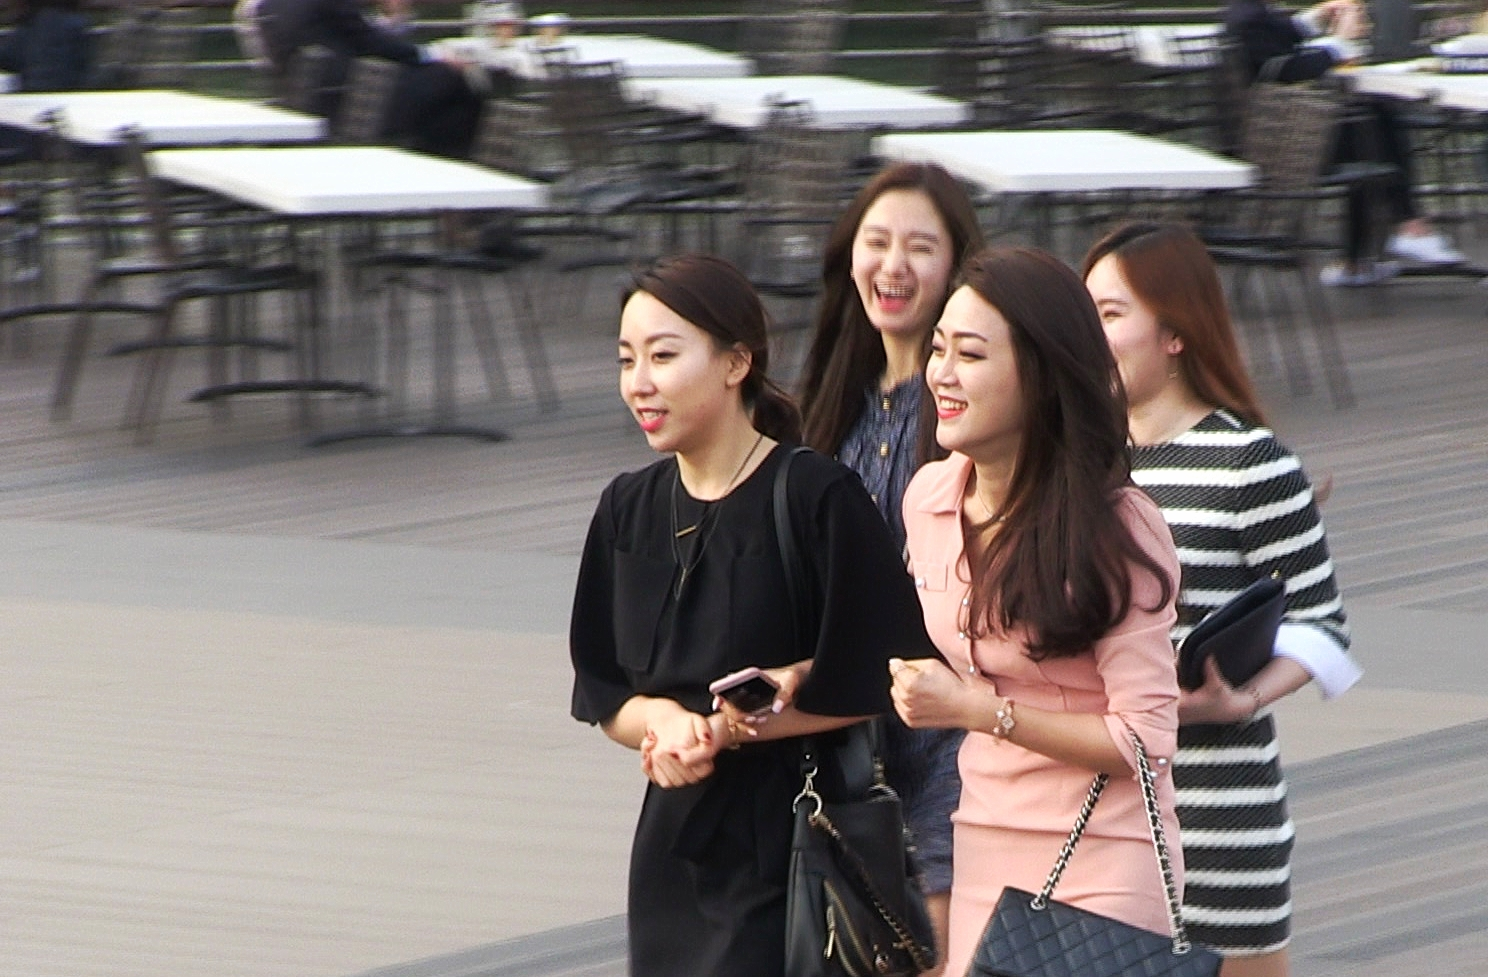 New generation girls at Busan's waterfront